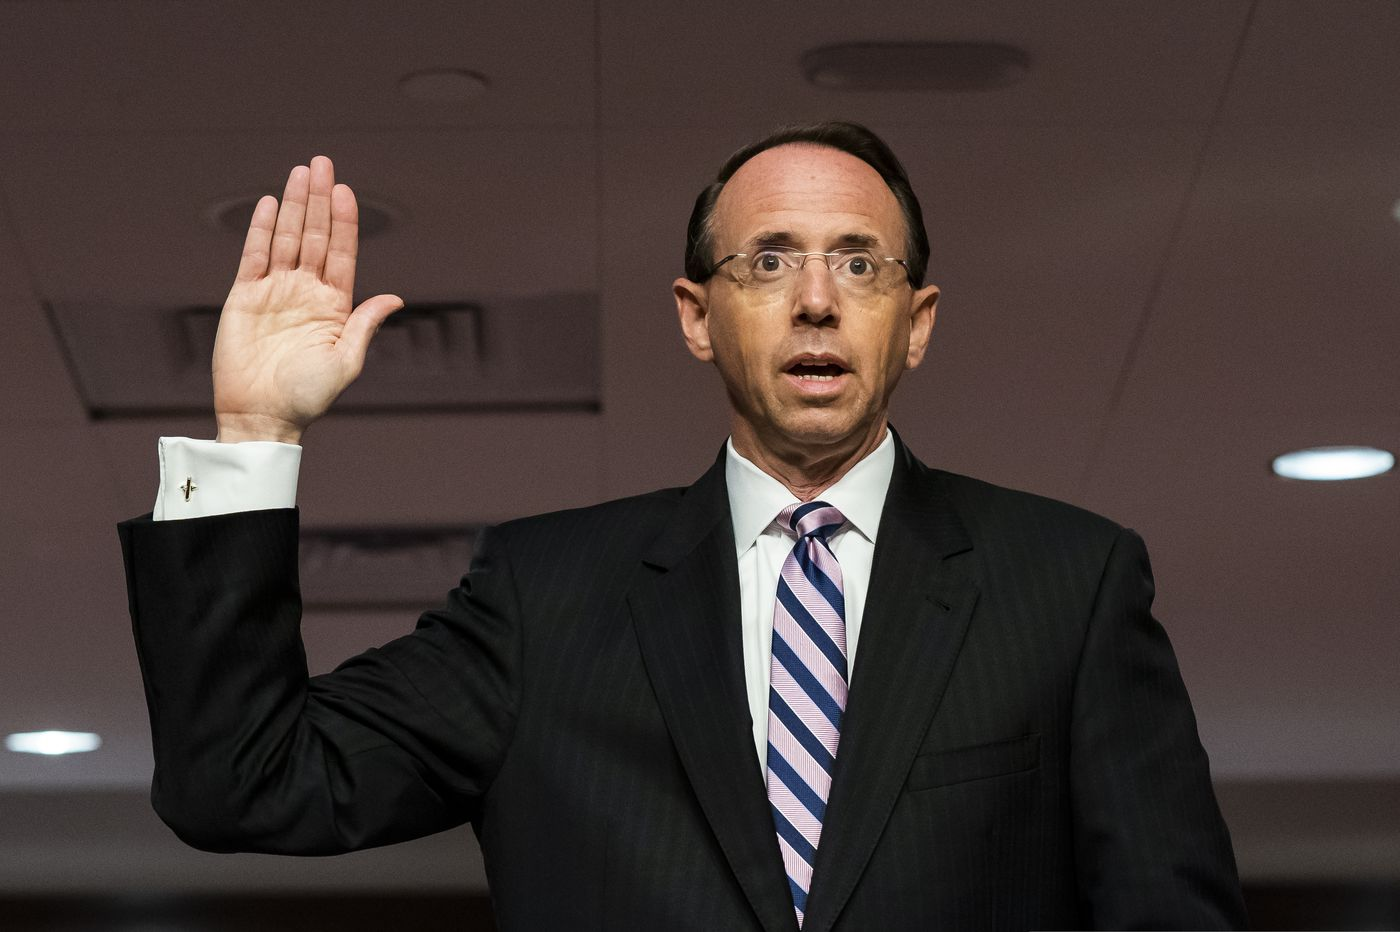 Rod Rosenstein says he wouldn't approve Russia warrant now